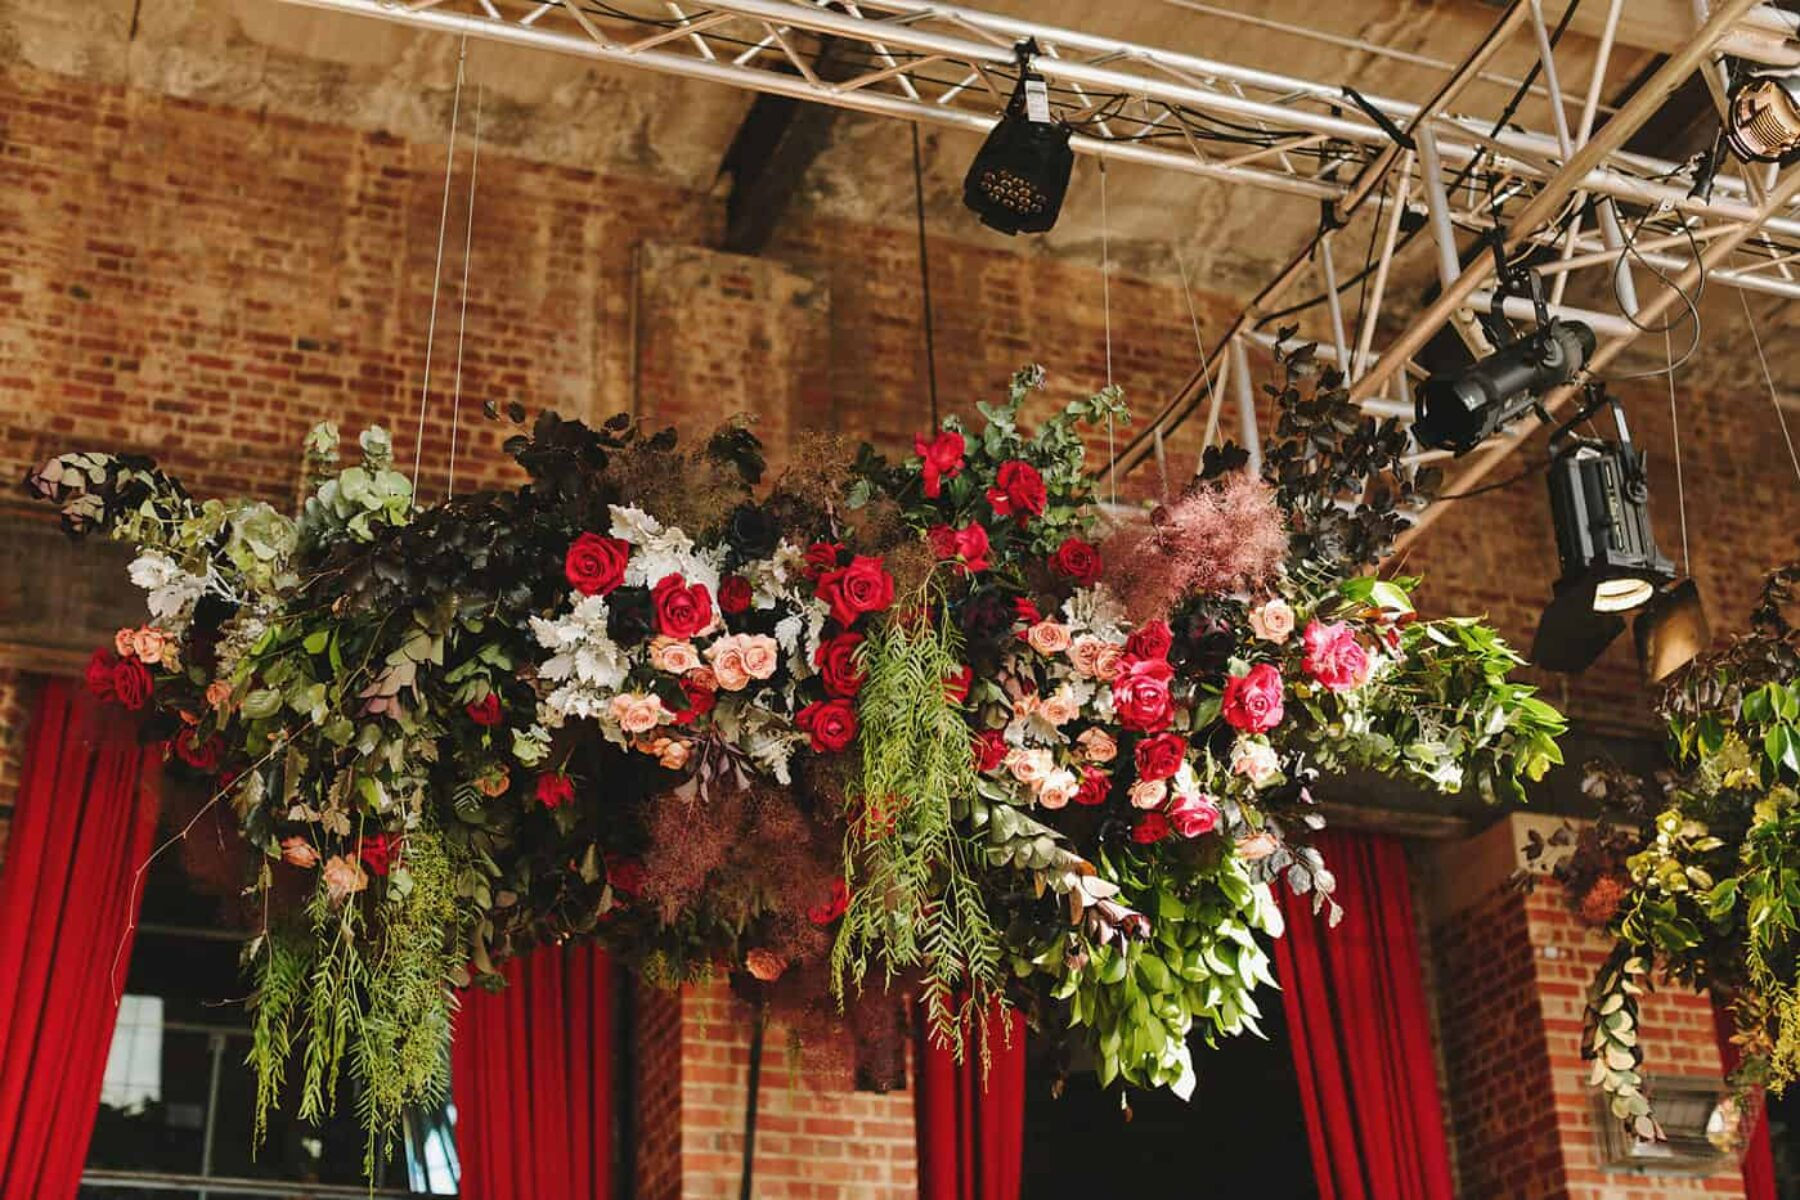 hanging floral installation in jewel tones and black roses